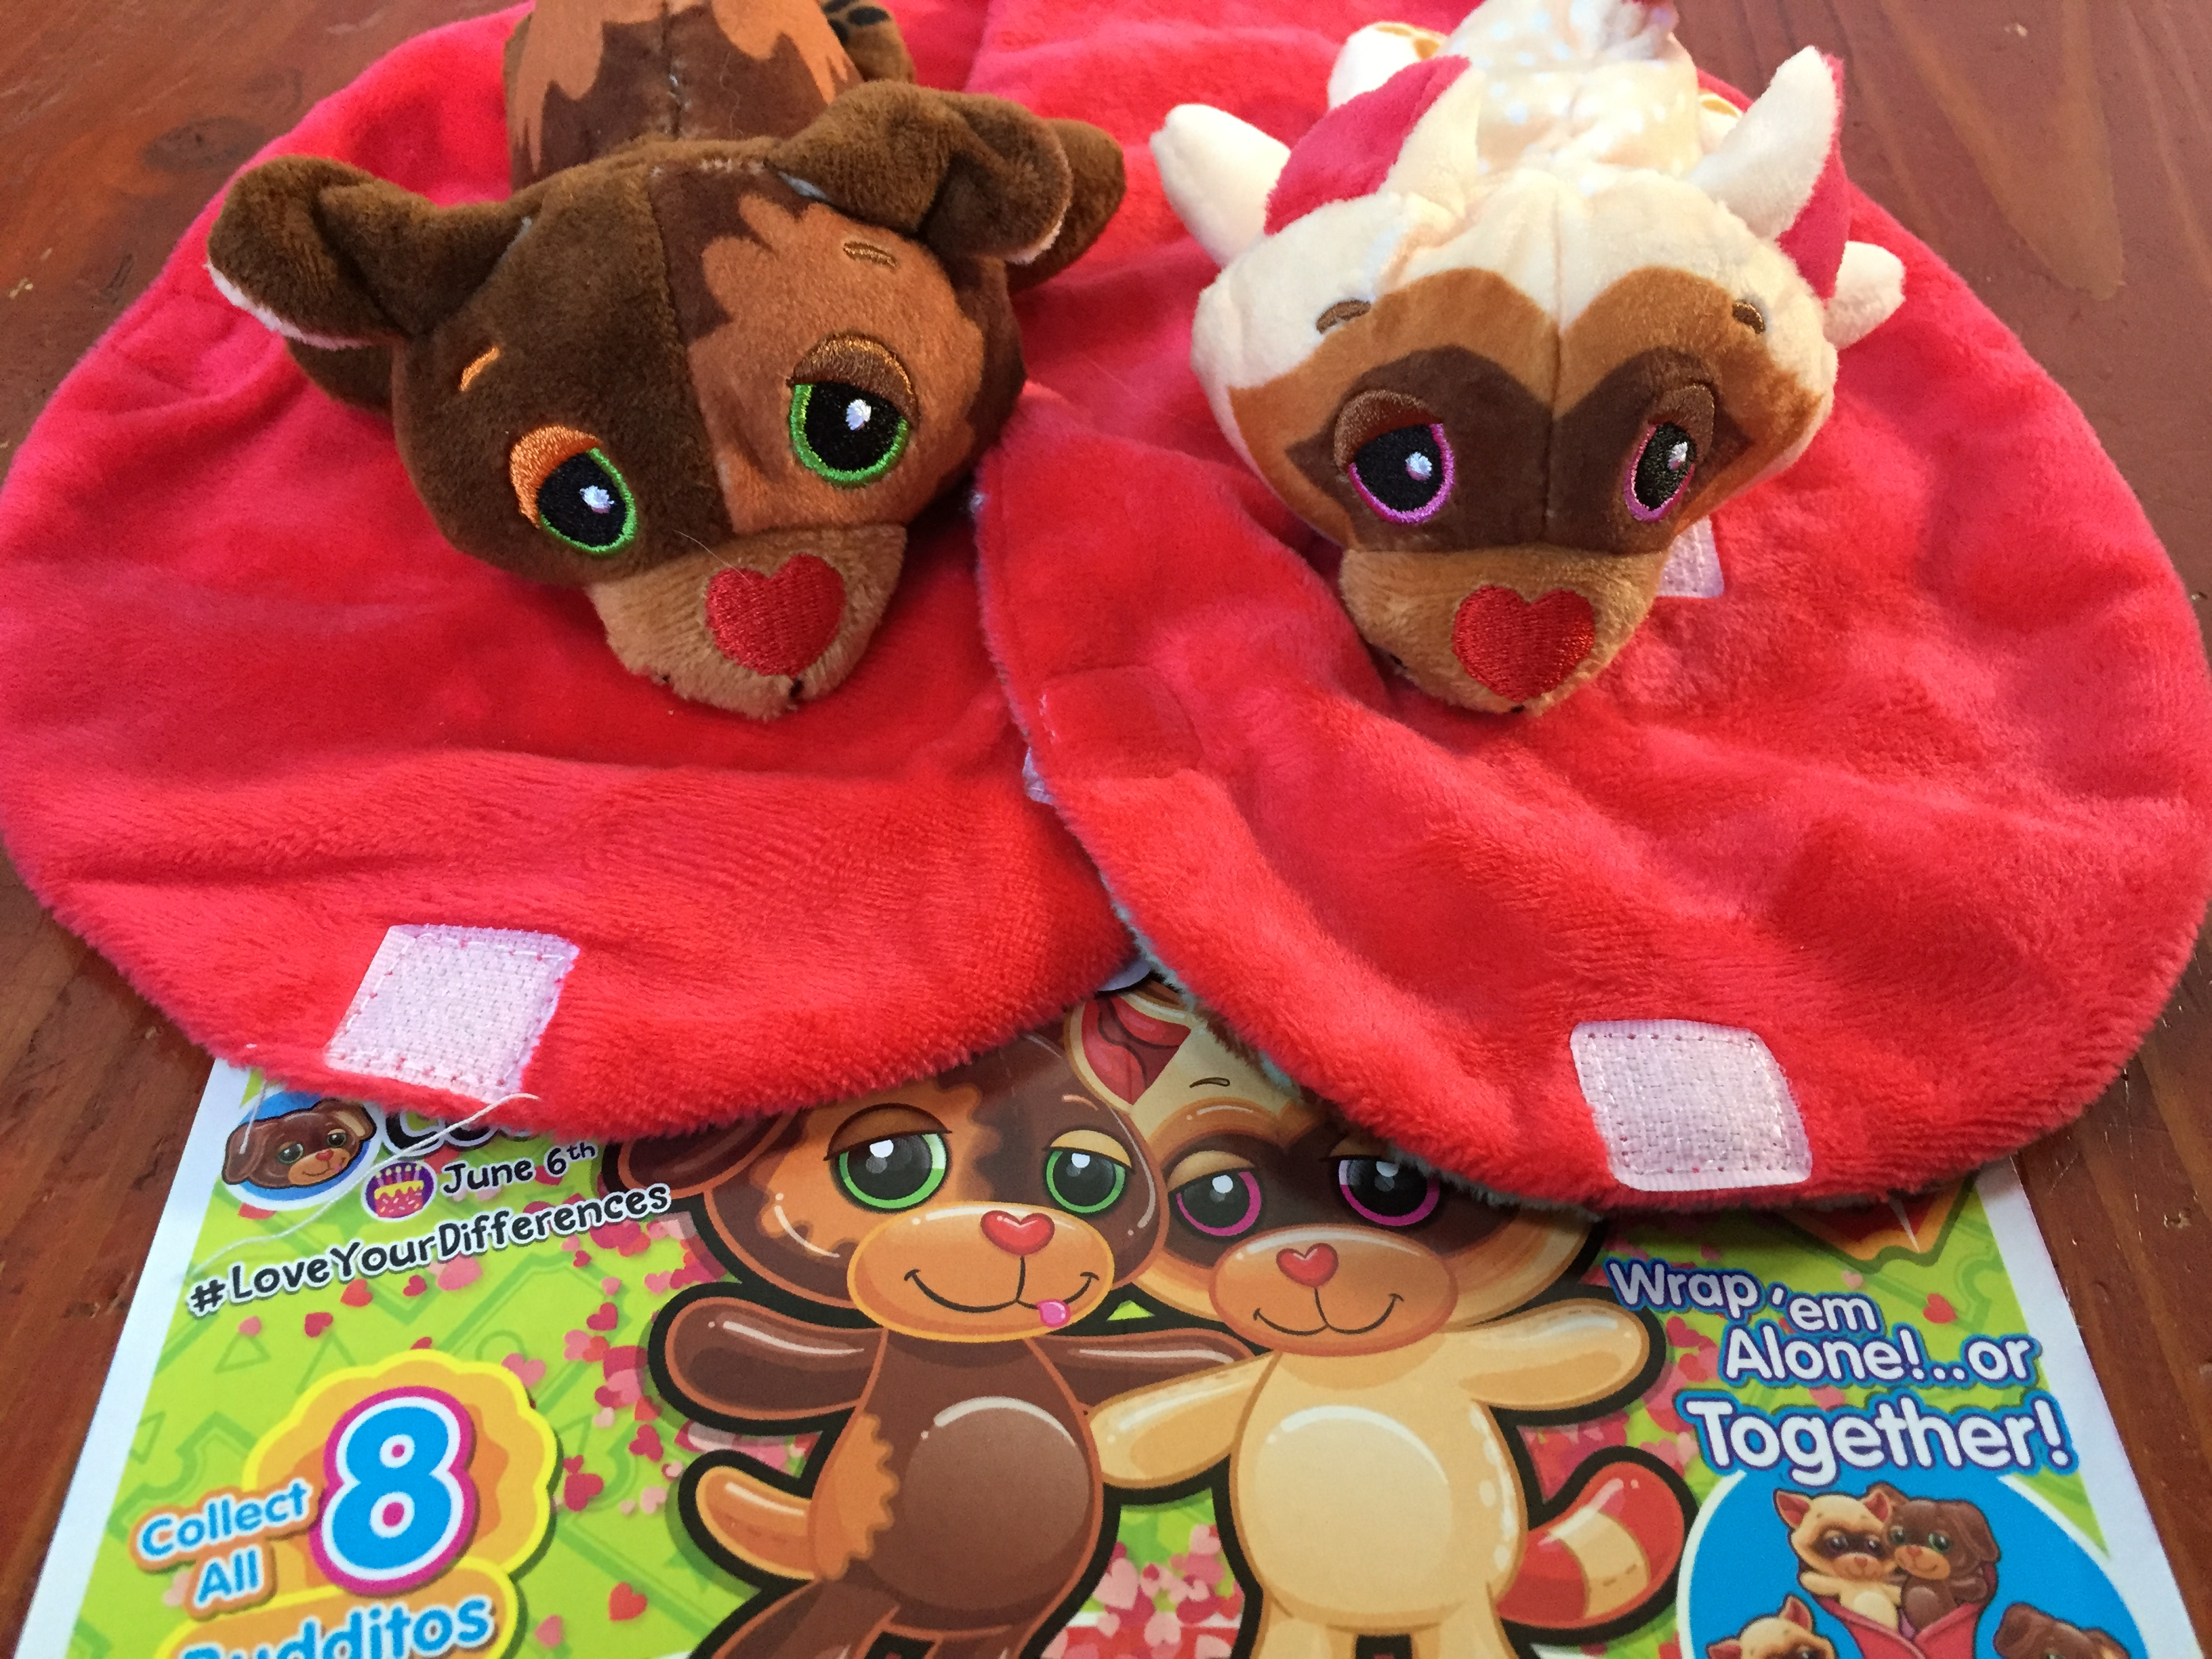 Cutetitos Carnivalitos Budditos chocolate sauce and churros mini stuffed animals side by side with